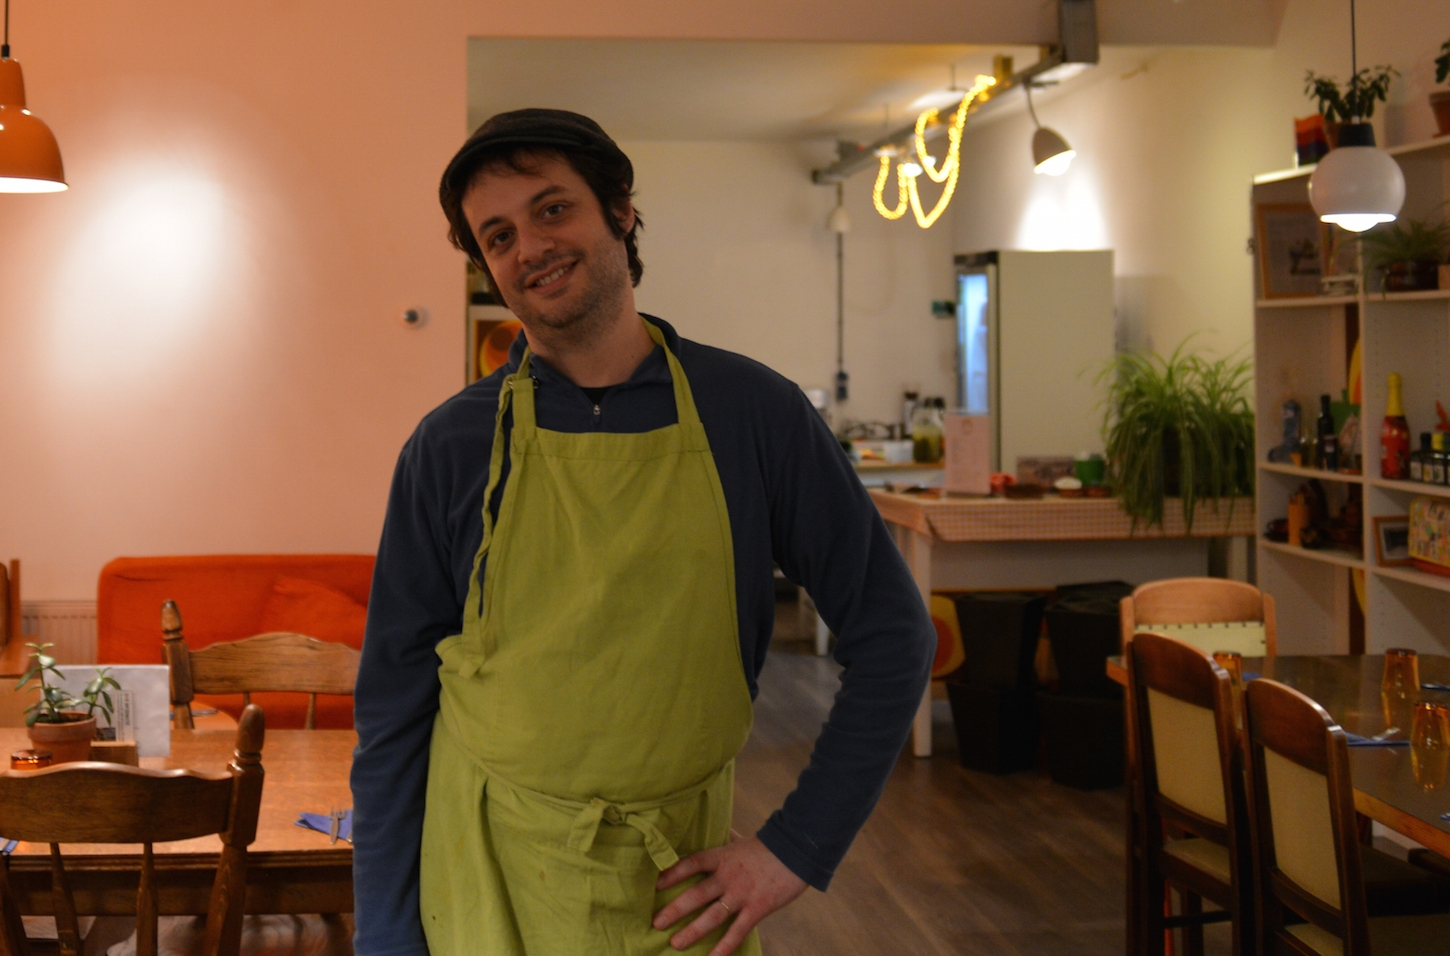 Yuval Gal in his hummus restaurant in The Hague. (Courtesy of Love & Peas)